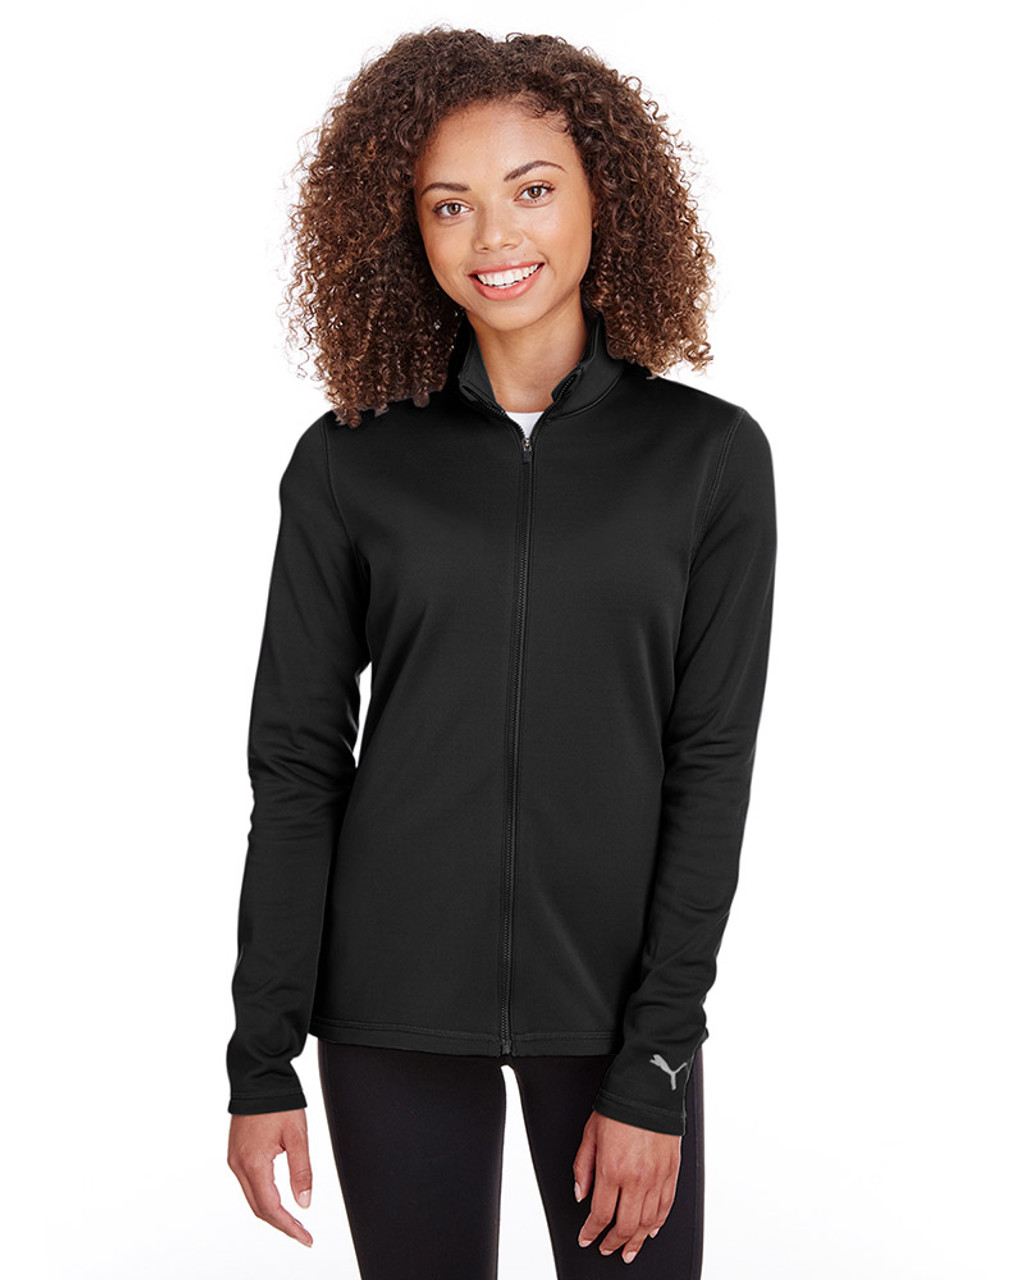 Puma Black - 597160 Puma Golf Ladies' Fairway Full-Zip Sweatshirt | Blankclothing.ca